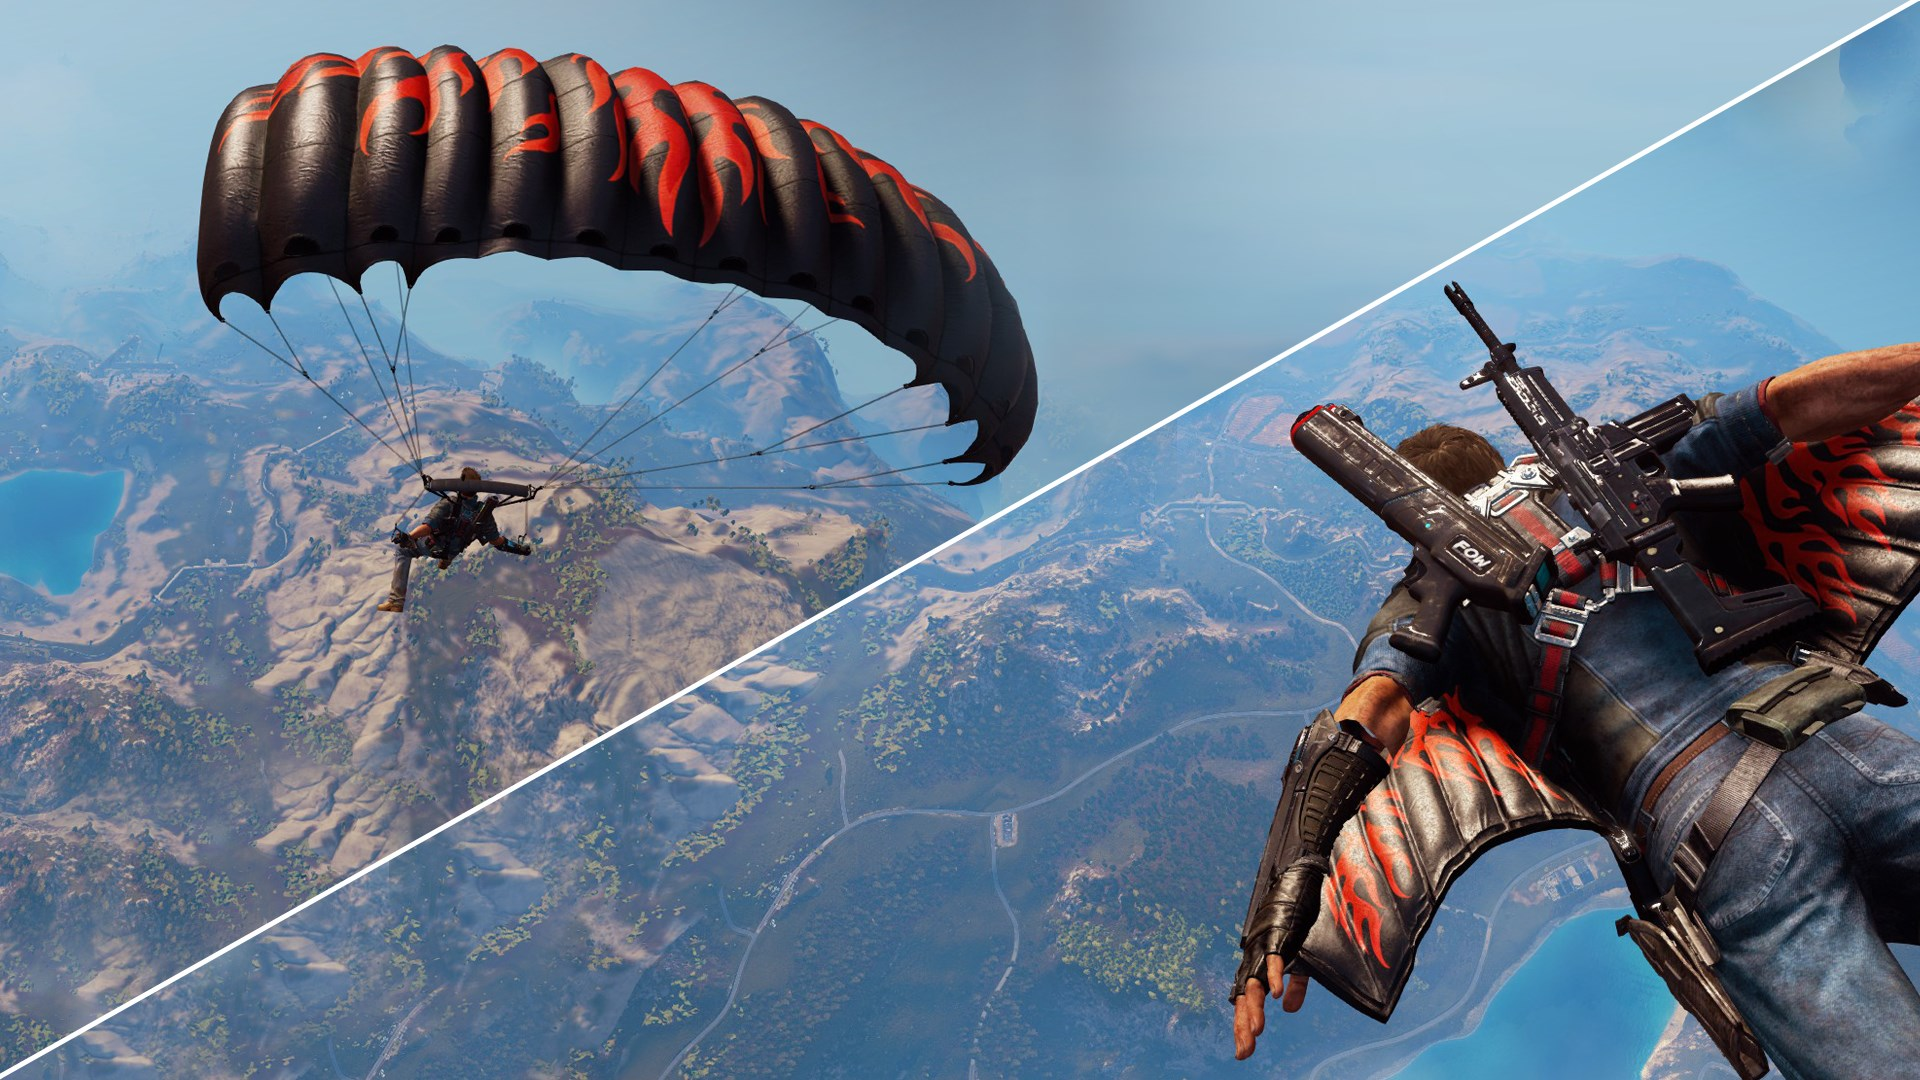 Flame Wingsuit and Parachute Skins